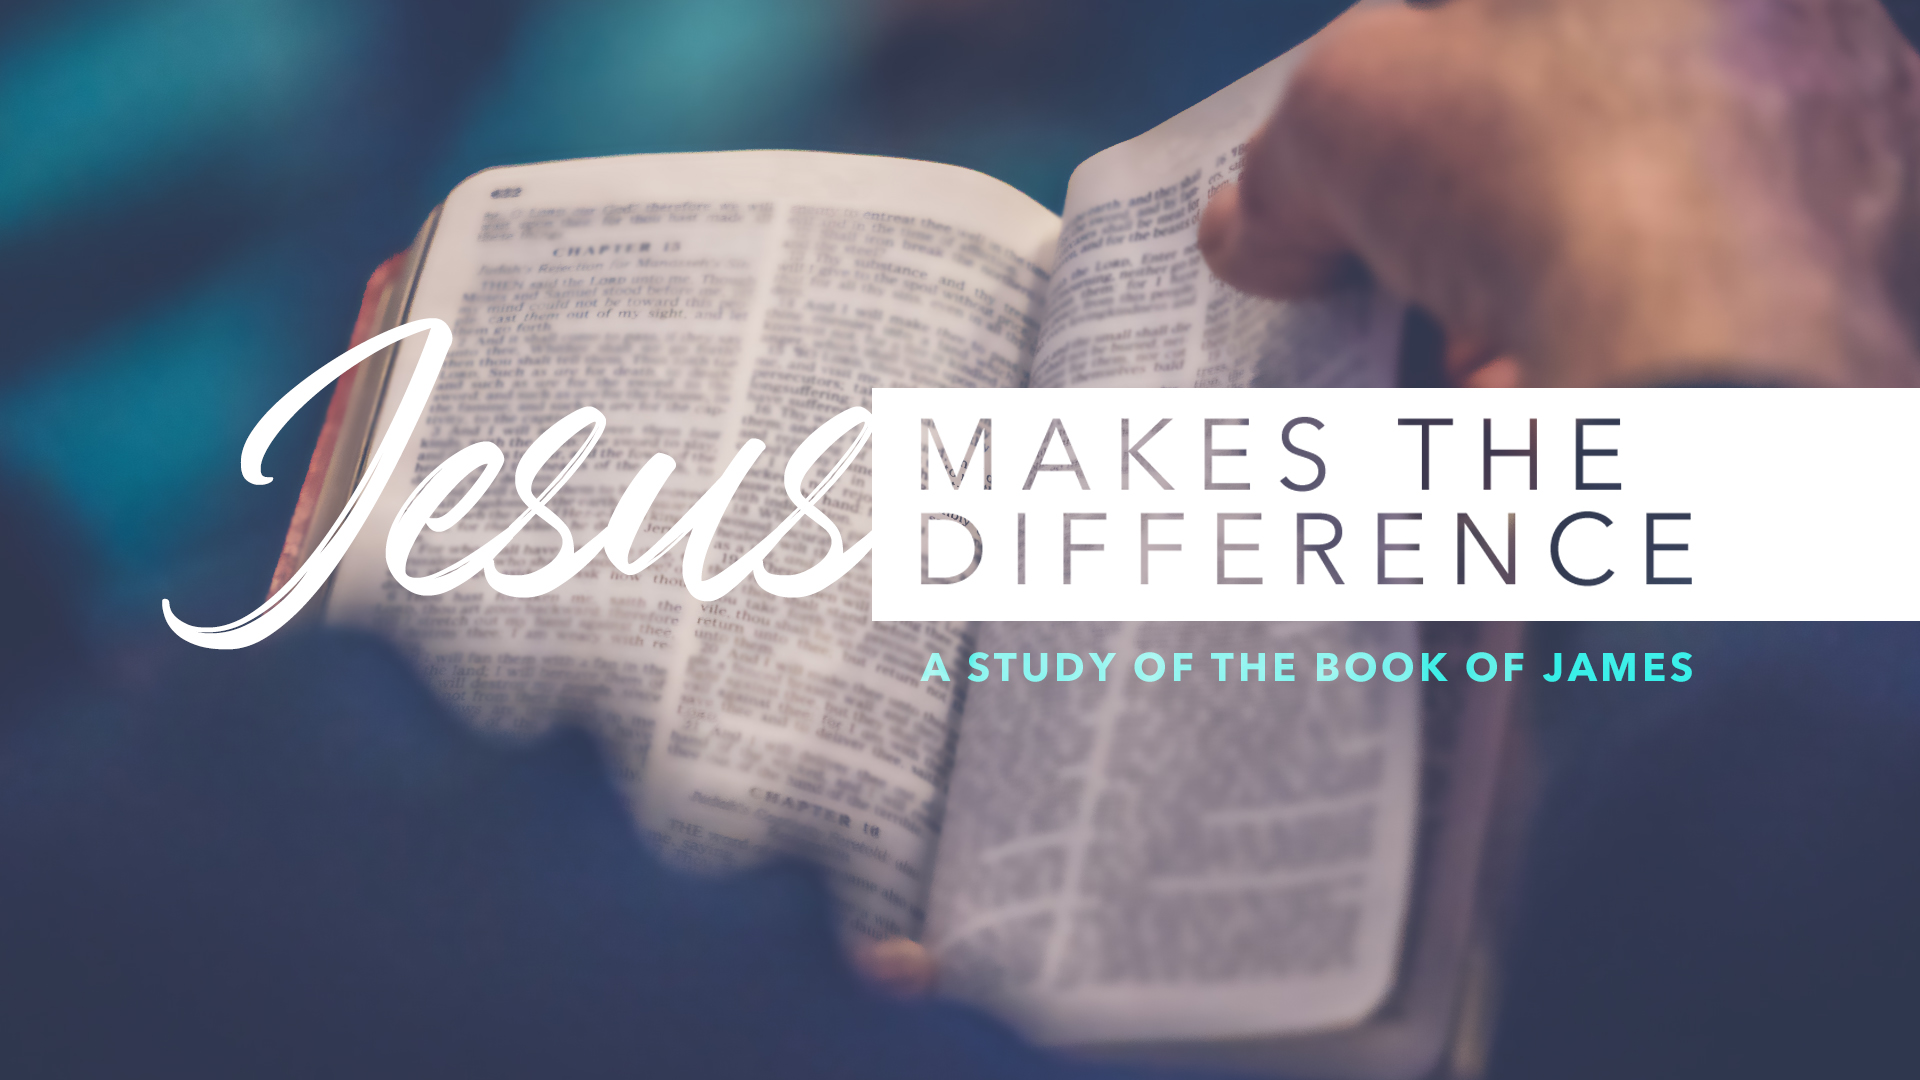 How I Fight Temptation - Jesus Makes the Difference